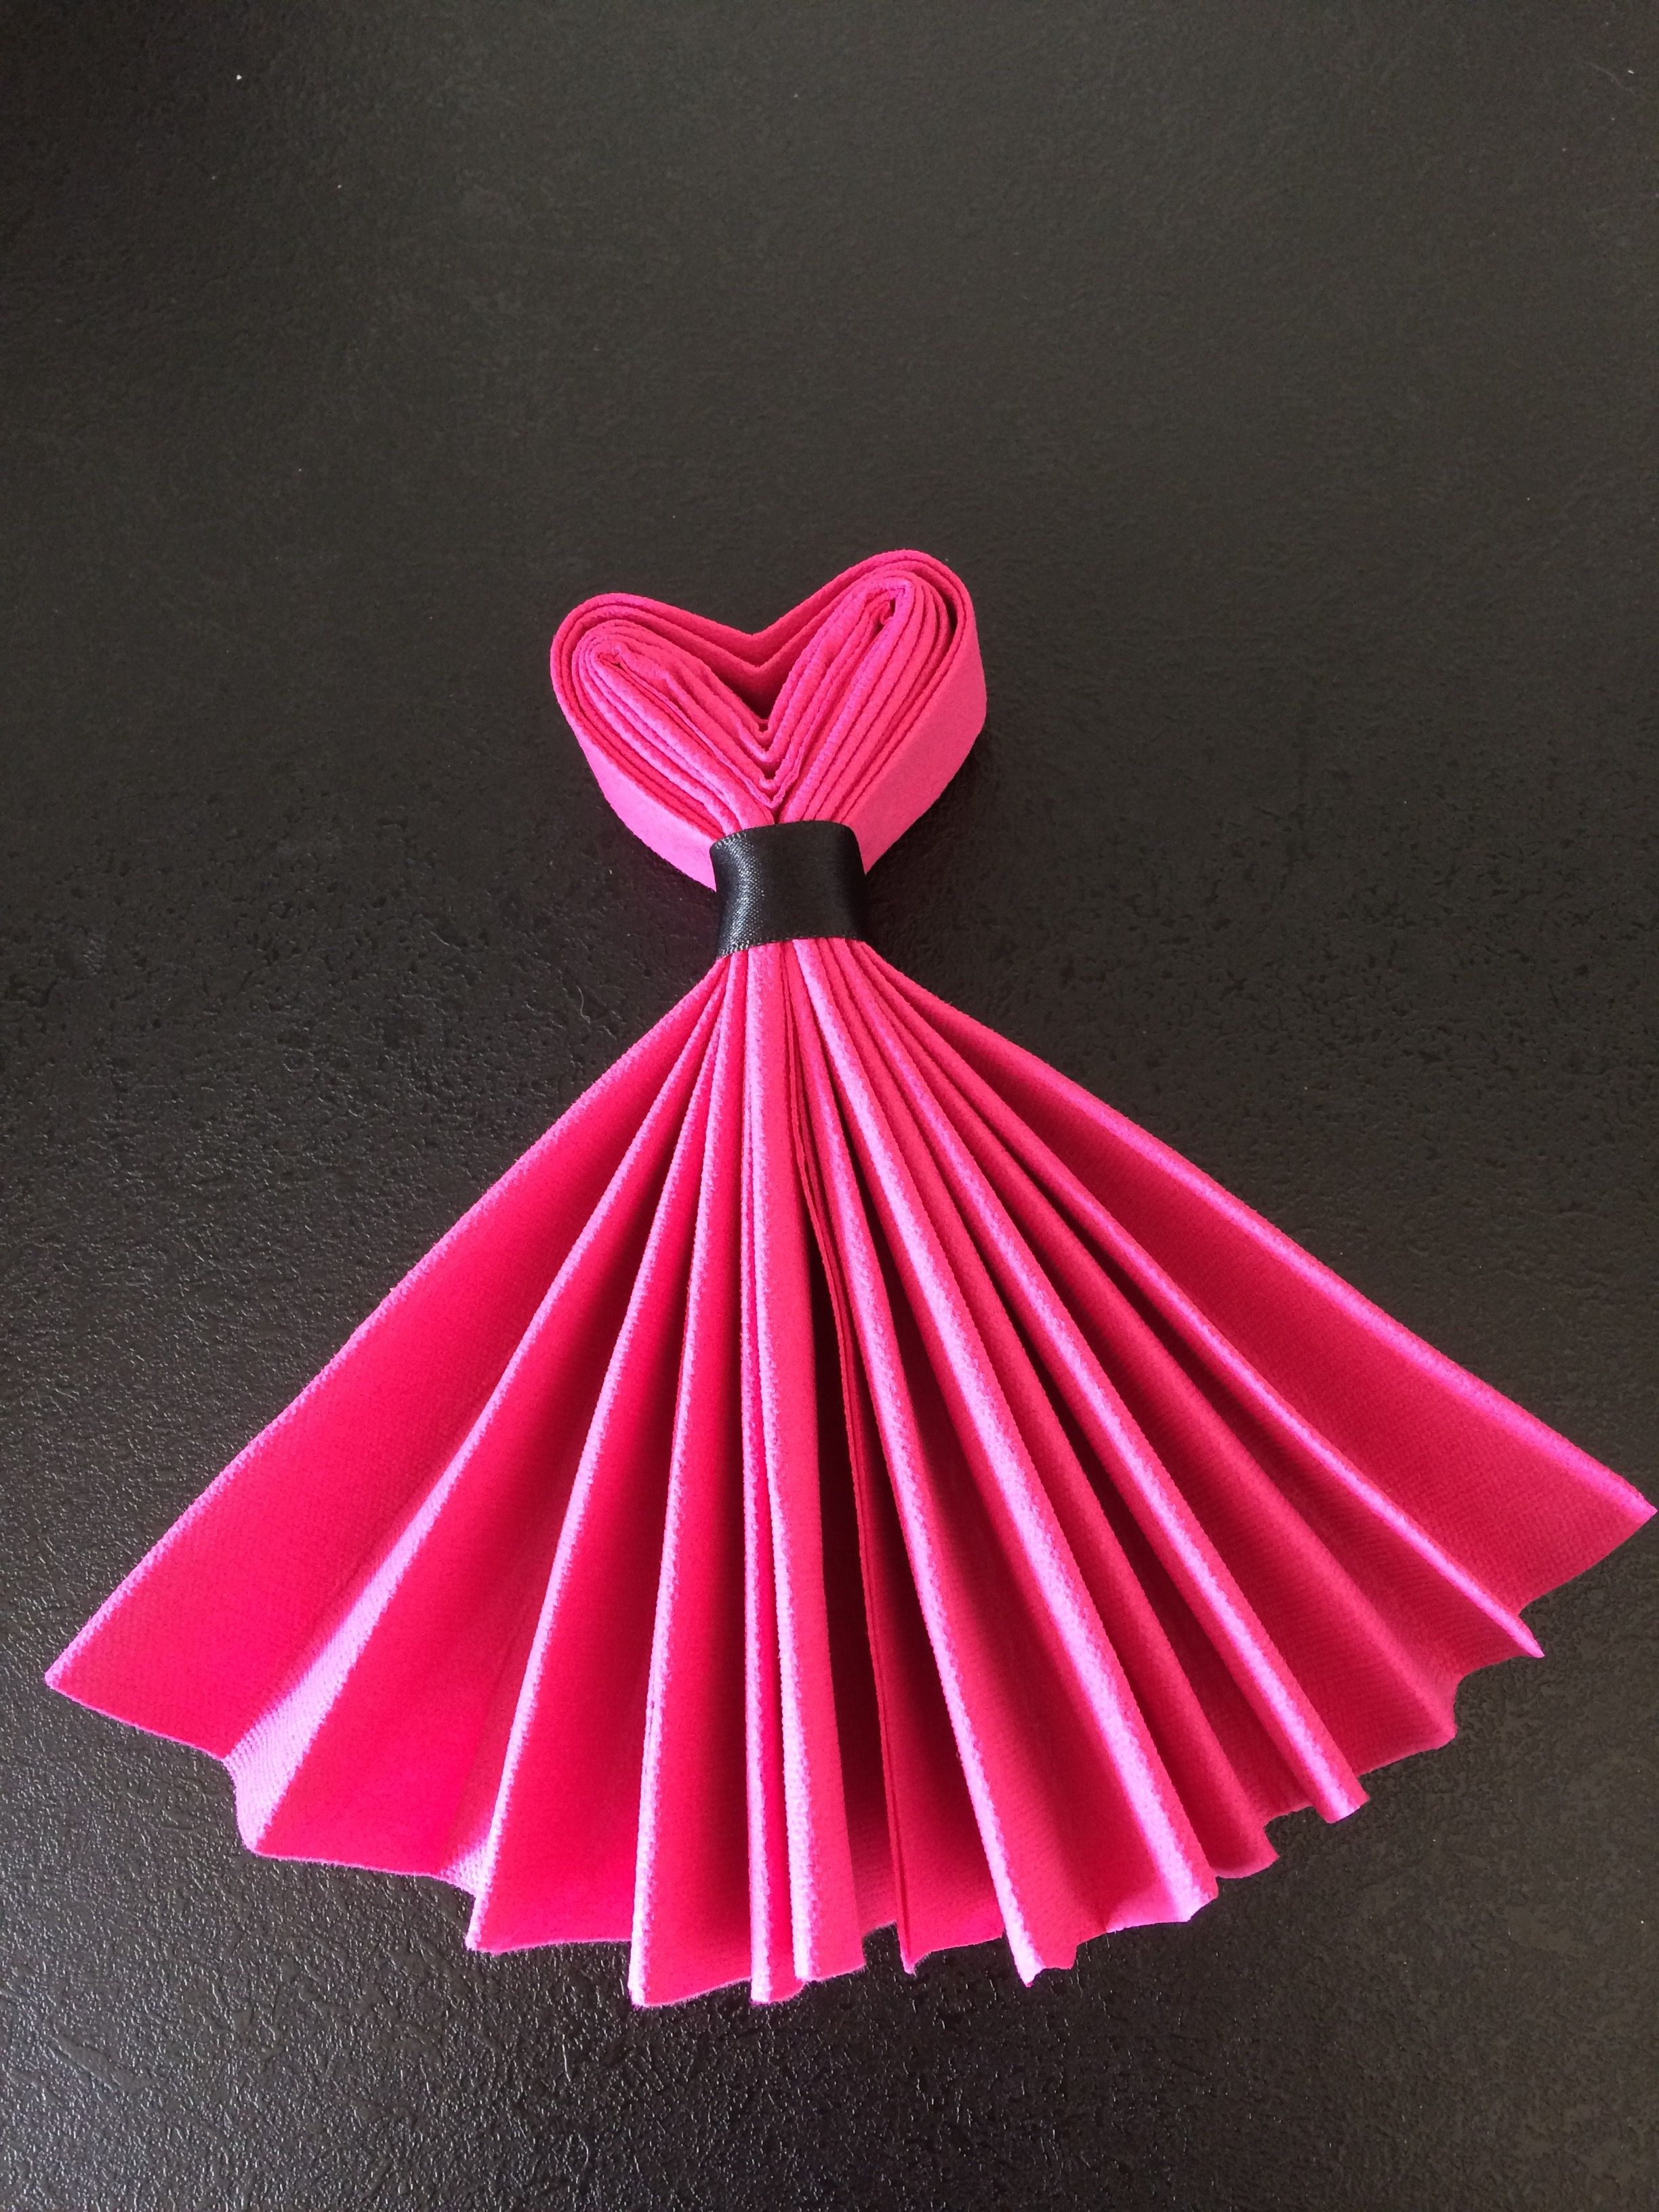 Party dress napkins pliage serviettes pinterest - Pliage des serviettes de table en papier ...